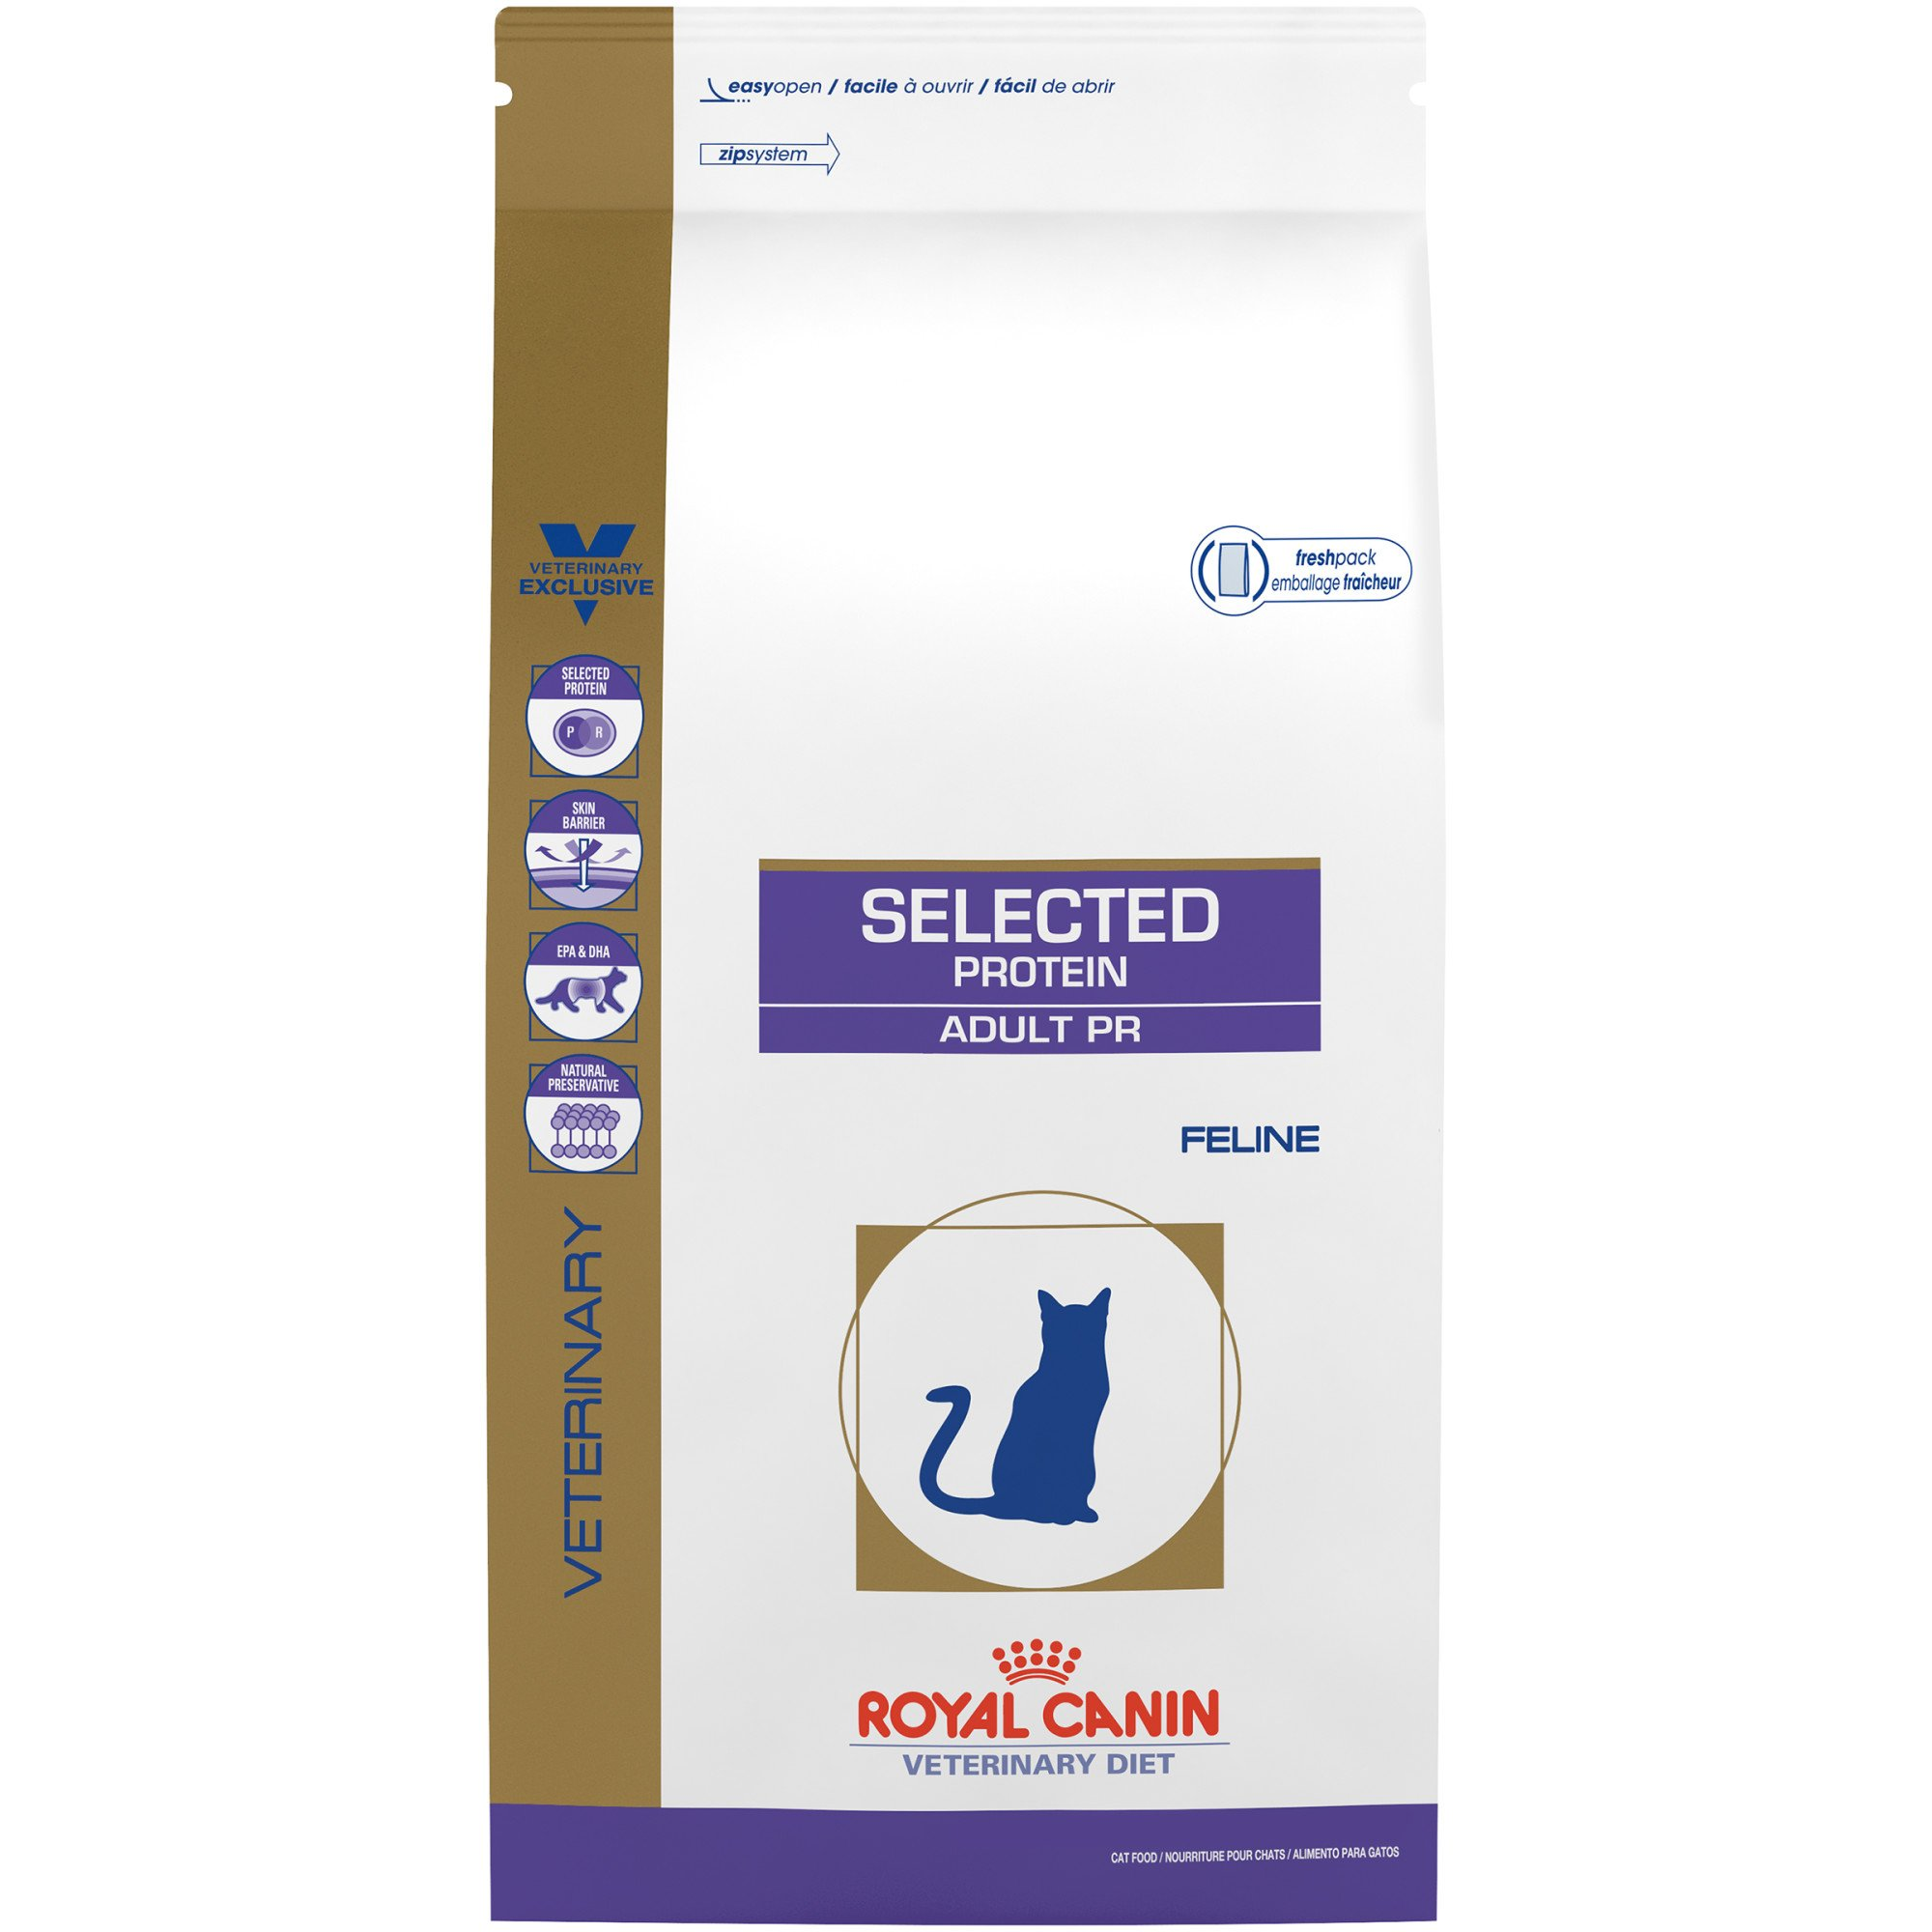 royal canin veterinary diet feline selected protein adult. Black Bedroom Furniture Sets. Home Design Ideas